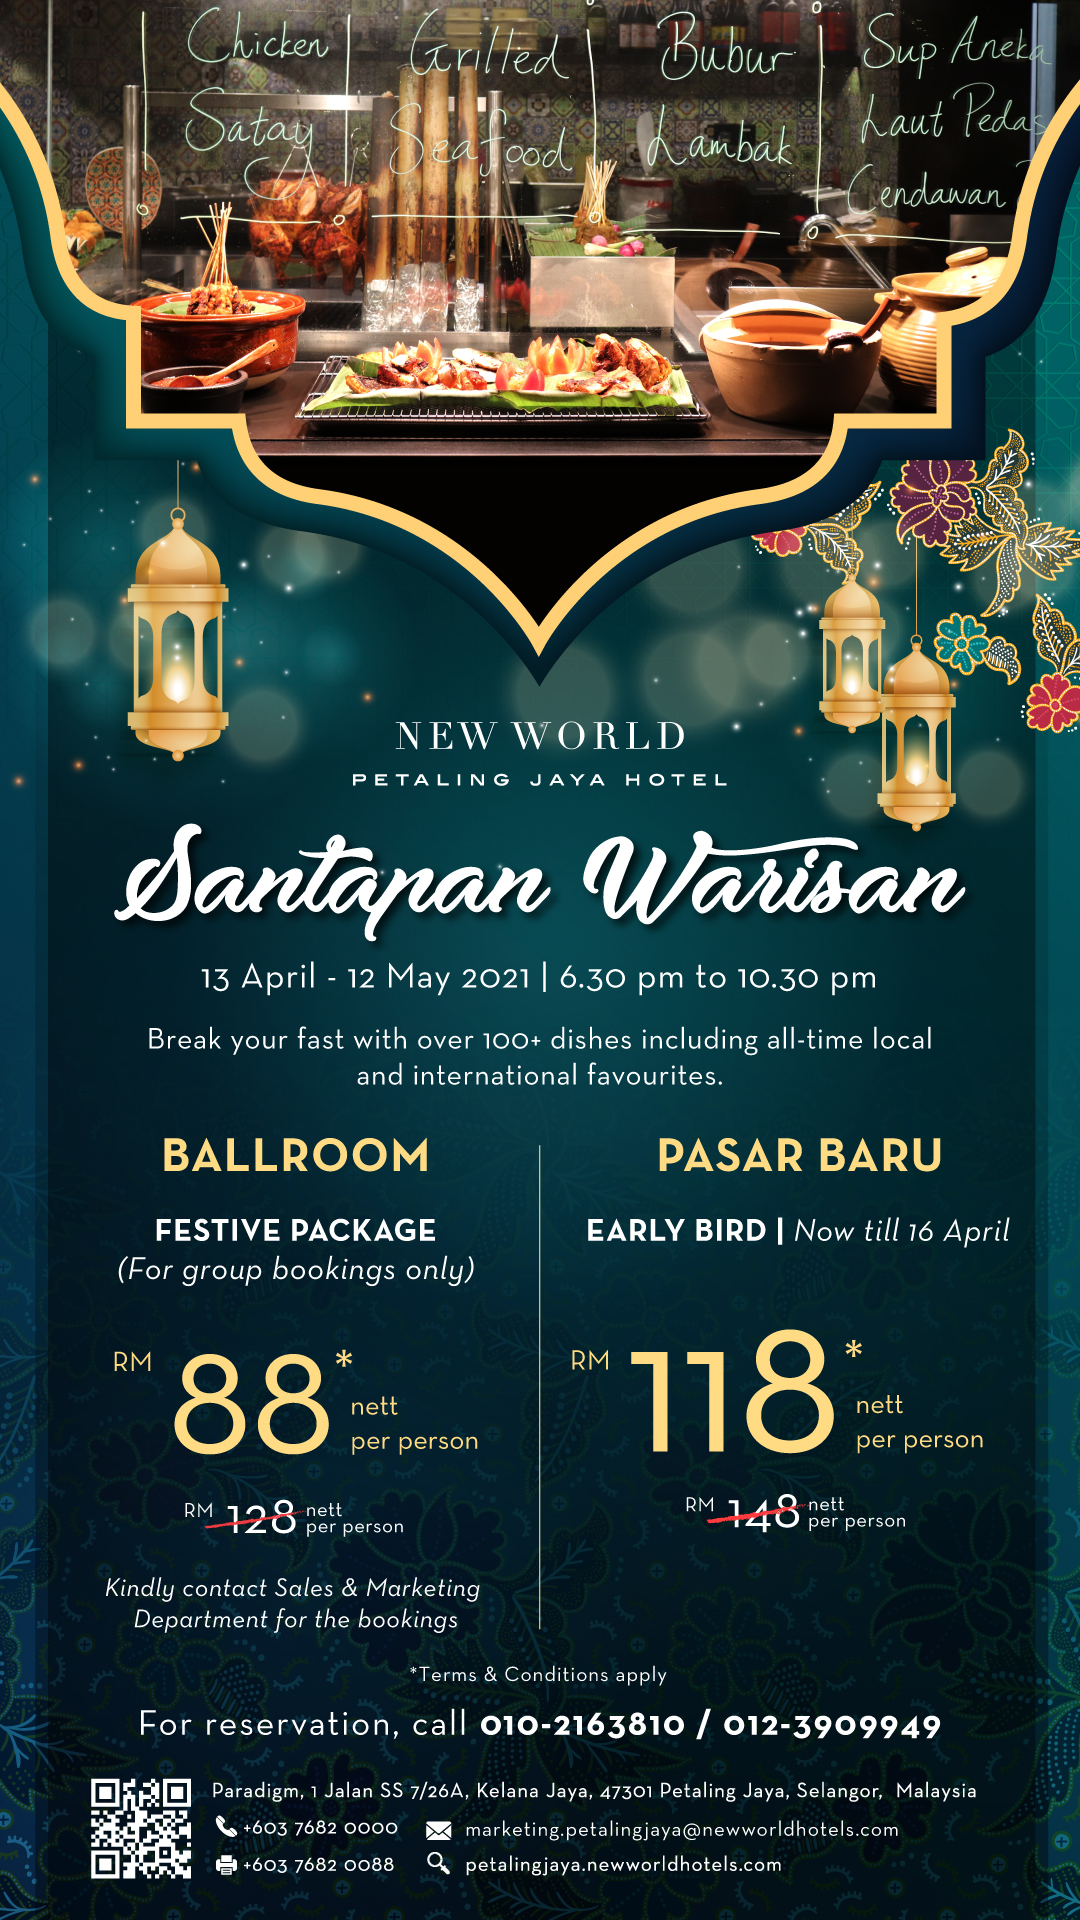 BUFET RAMADAN 2021 NEW WORLD PETALING JAYA HOTEL